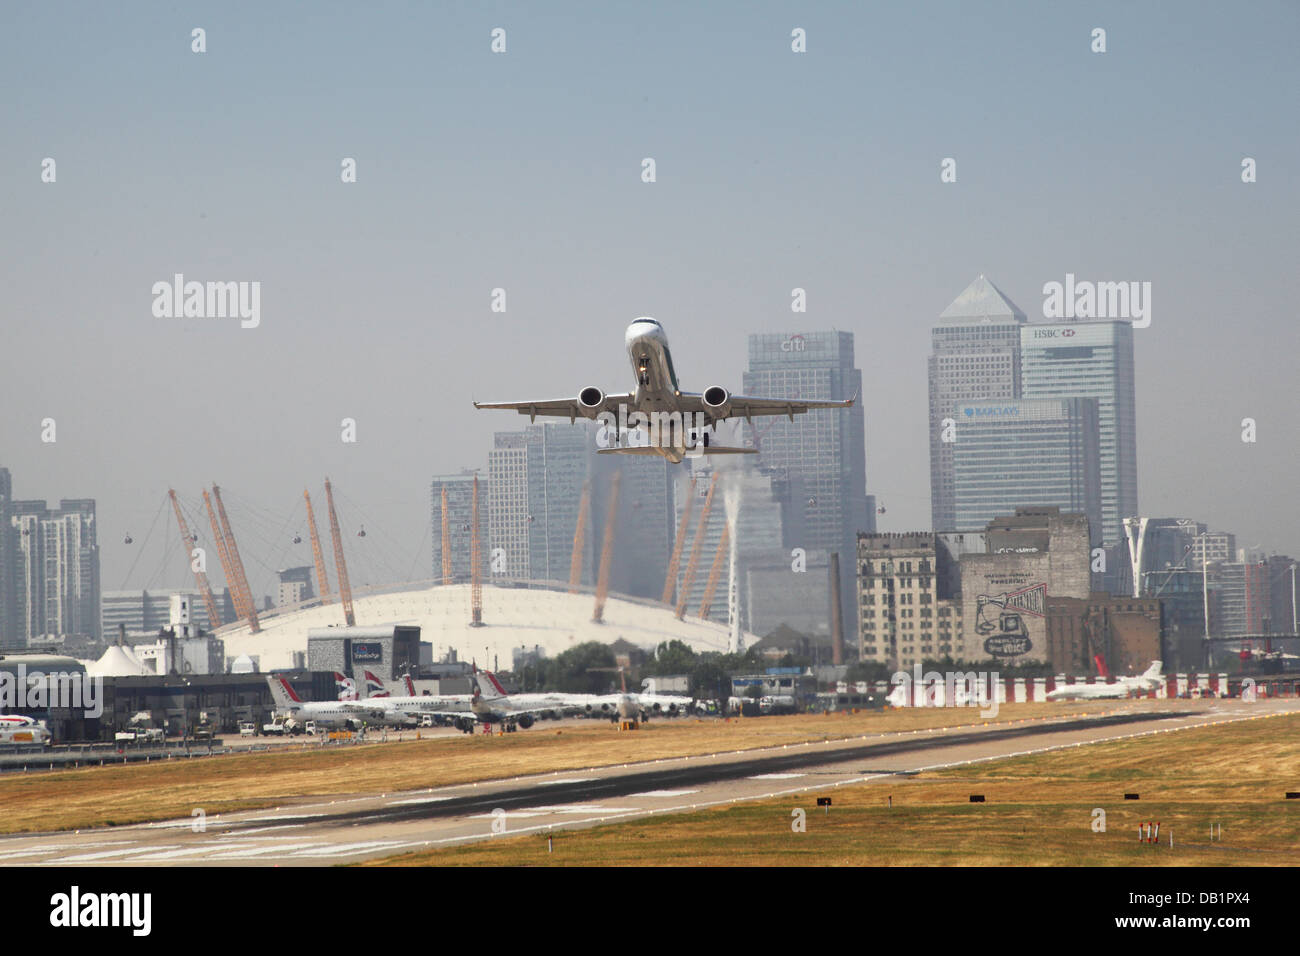 A passenger jet takes off from London City Airport with Canary Wharf and the Millennium Dome in background - Stock Image